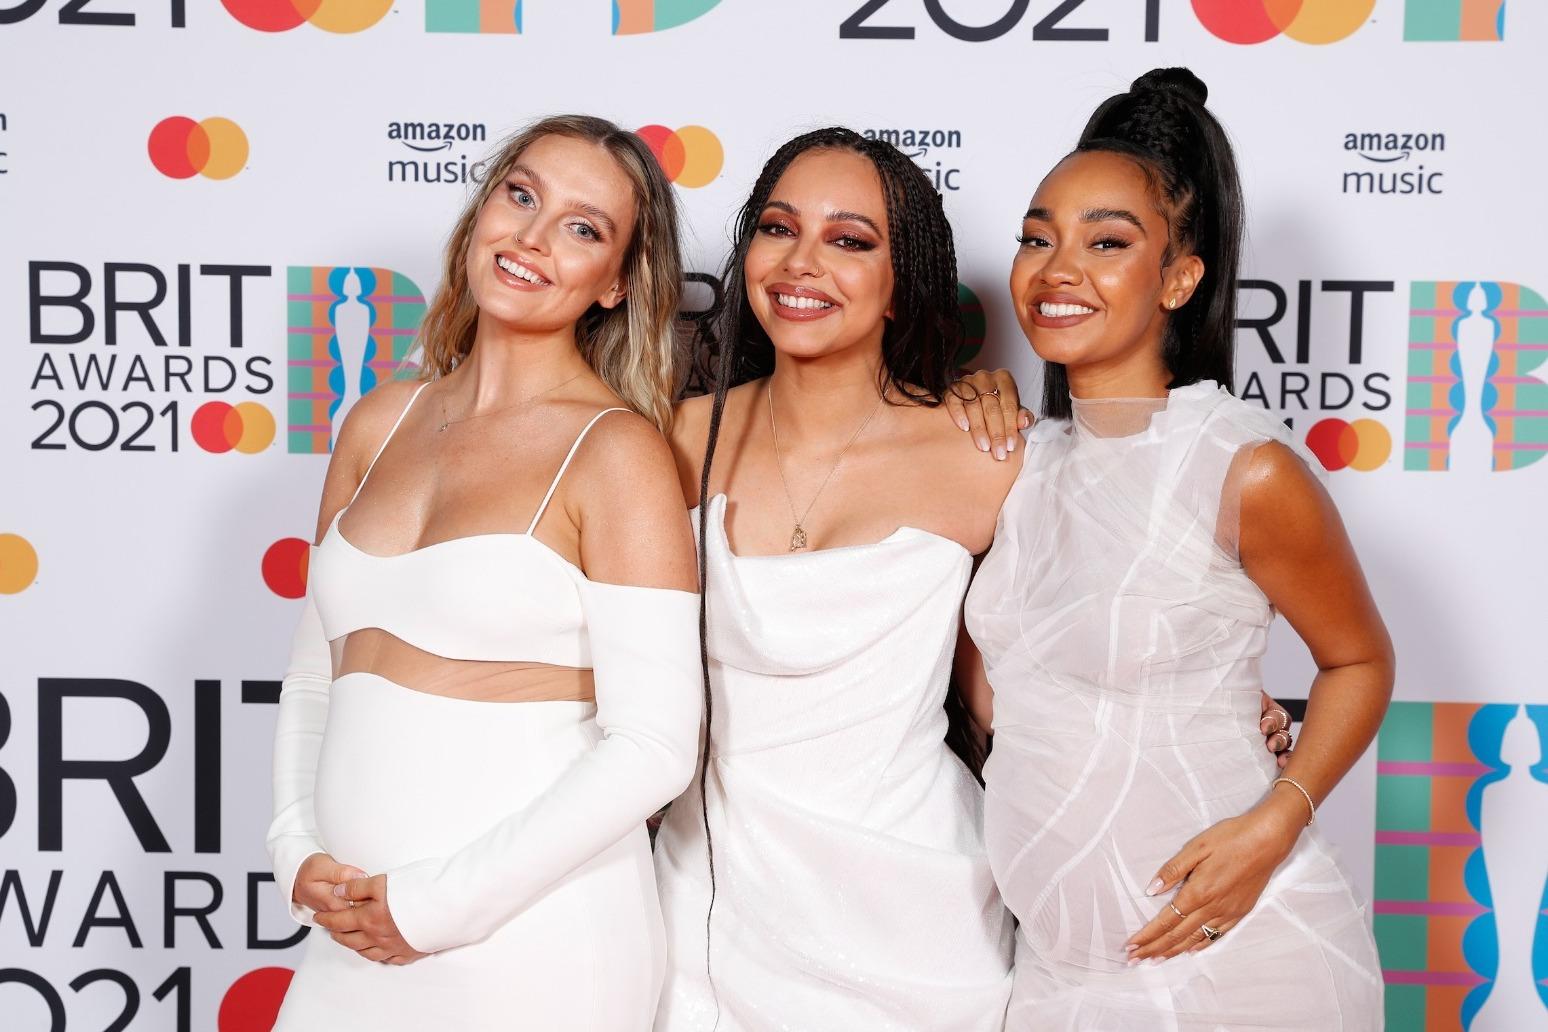 Women dominate at Brits as live music returns to O2 after more than a year